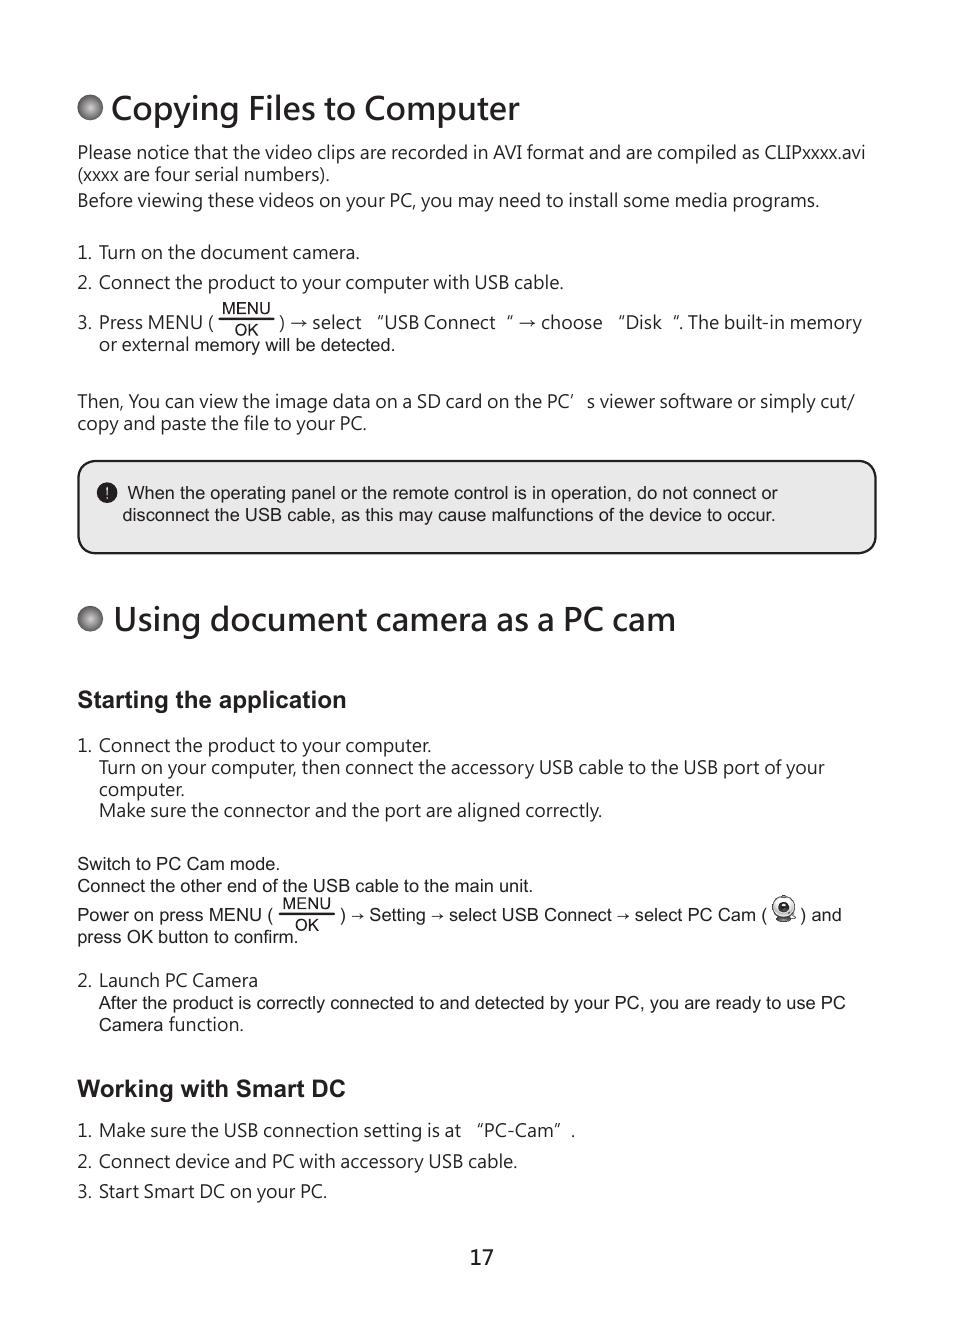 Copying files to computer, Using document camera as a pc cam